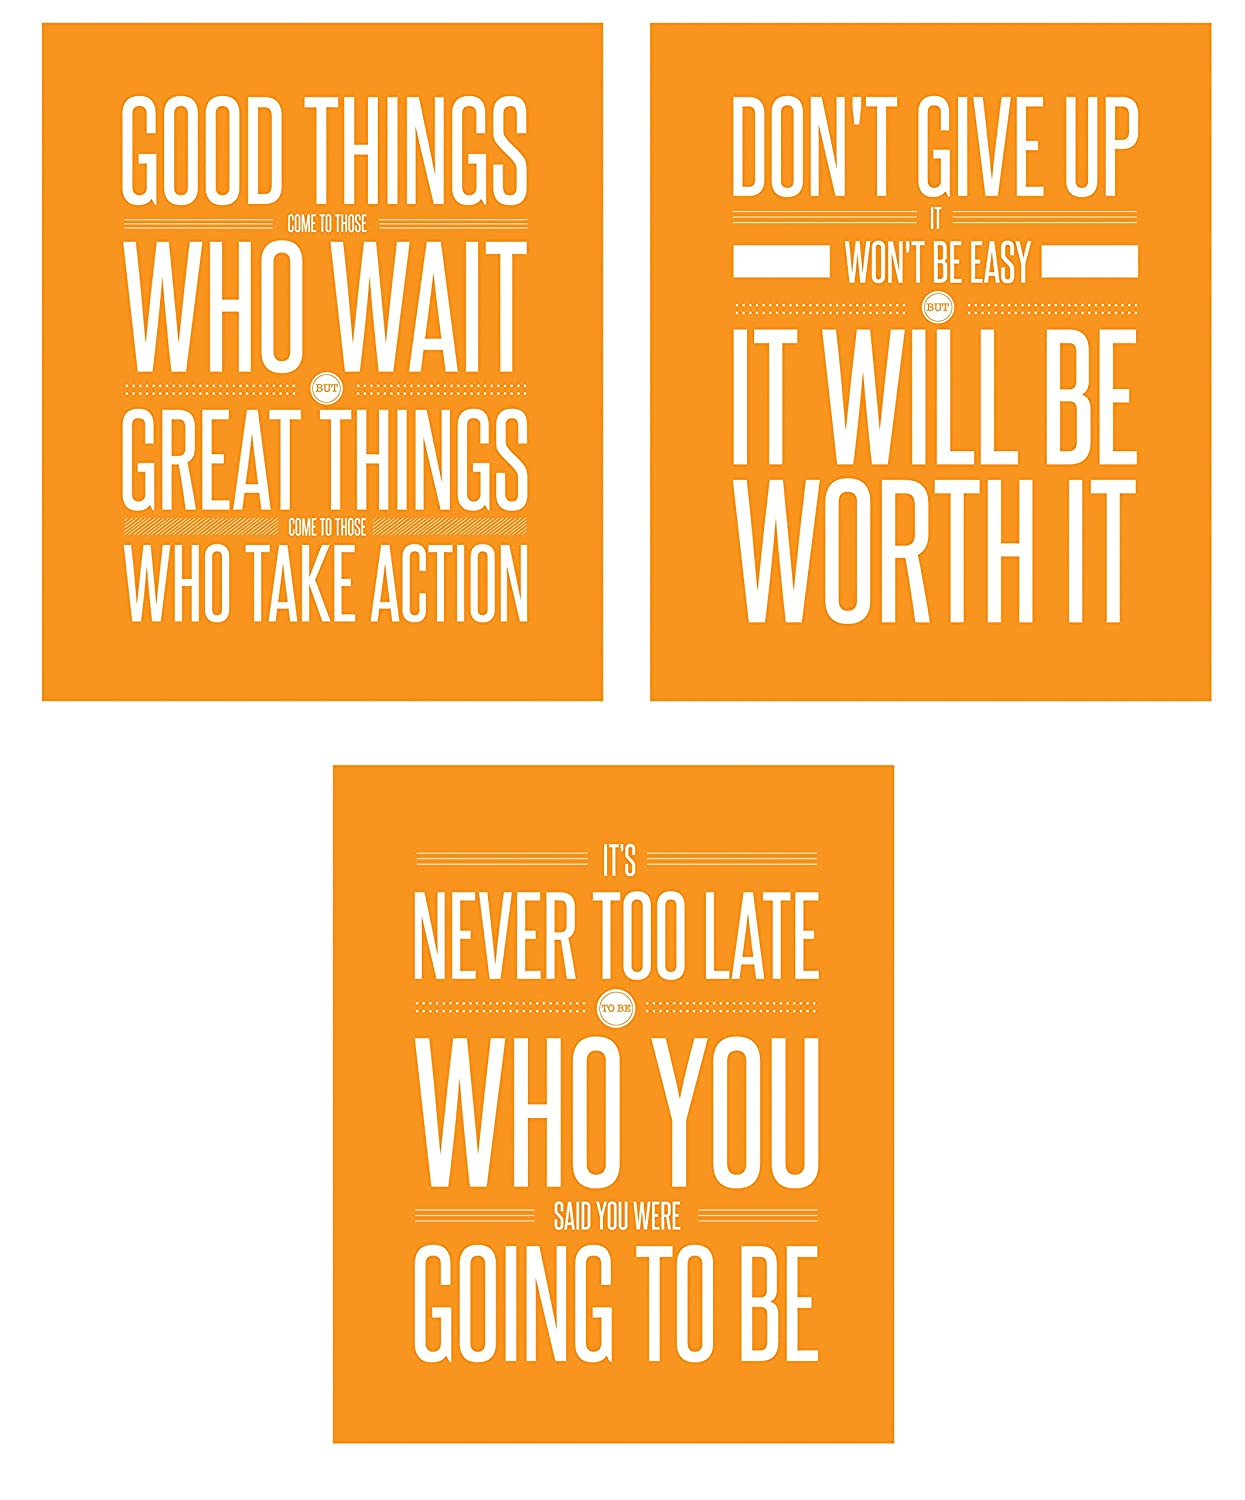 Don't Give Up 3 Poster Set Motivational Inspirational Quote Wall Workout Sports Art Boy Girl Teen Fitness Wall Home Decor Office Classroom Dorm Room Gym Entrepreneur (8 x 10 Orange)